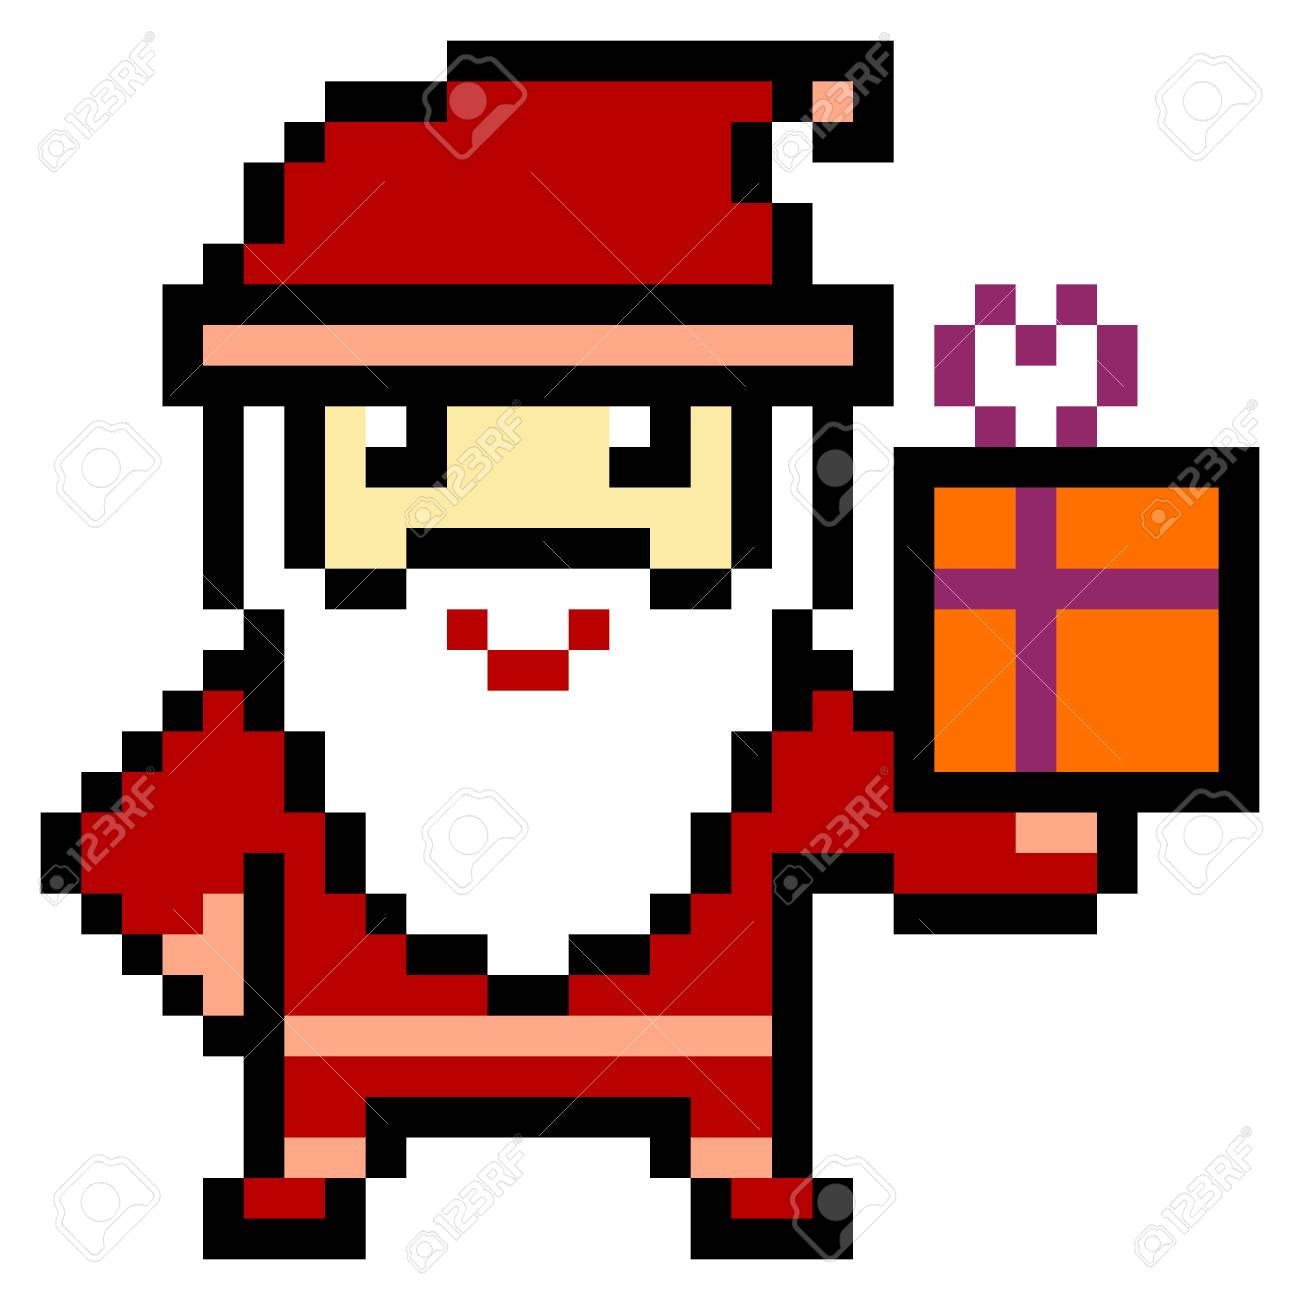 Art Illustration Design Pixel Père Noël